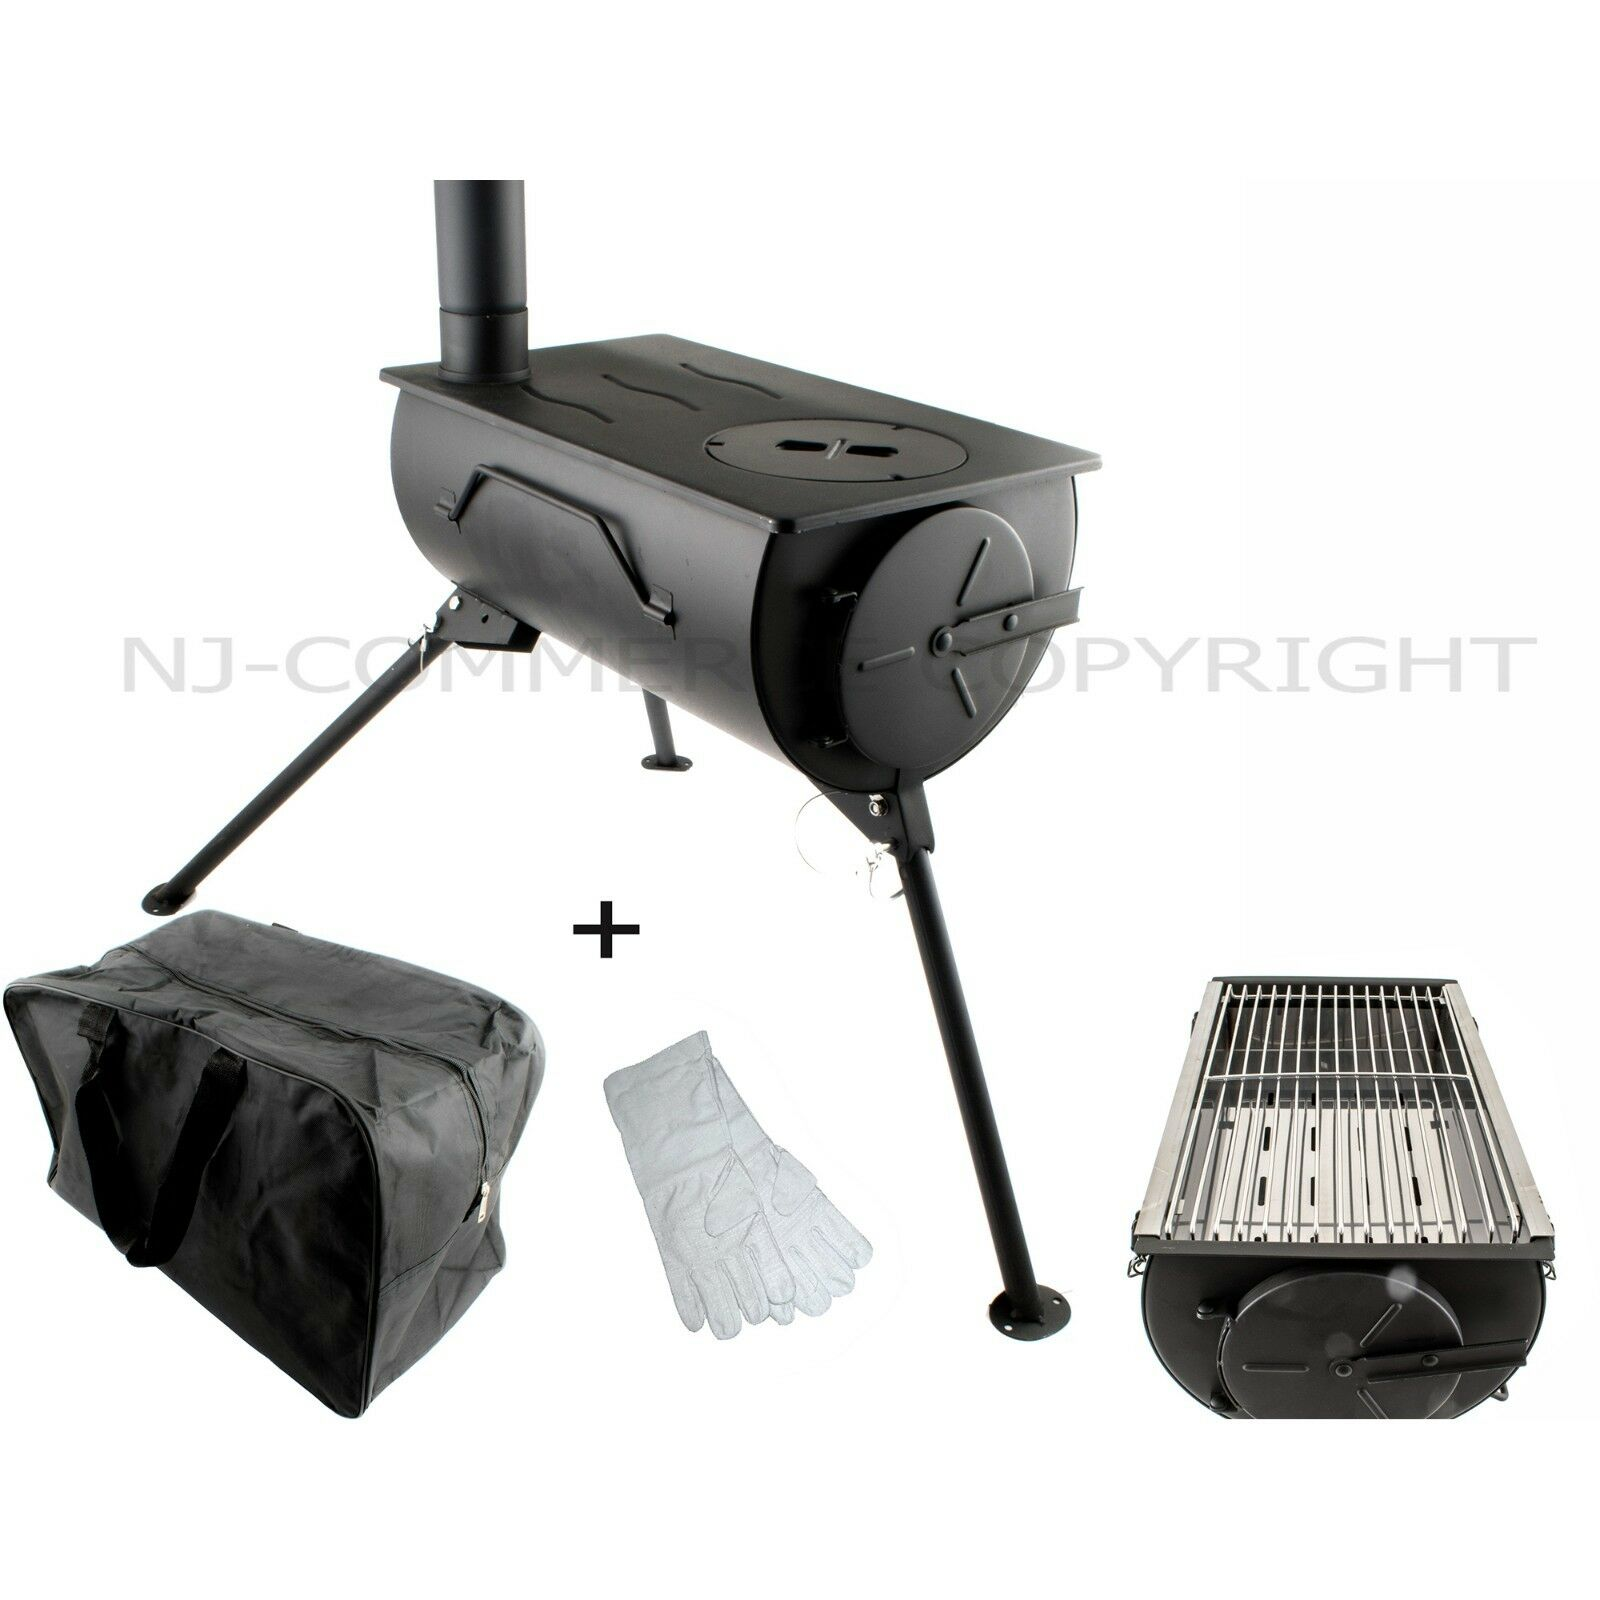 Portable Wood Stove GRILL Camping BBQ Cooker with Carry Bag &Accessories COMFORT